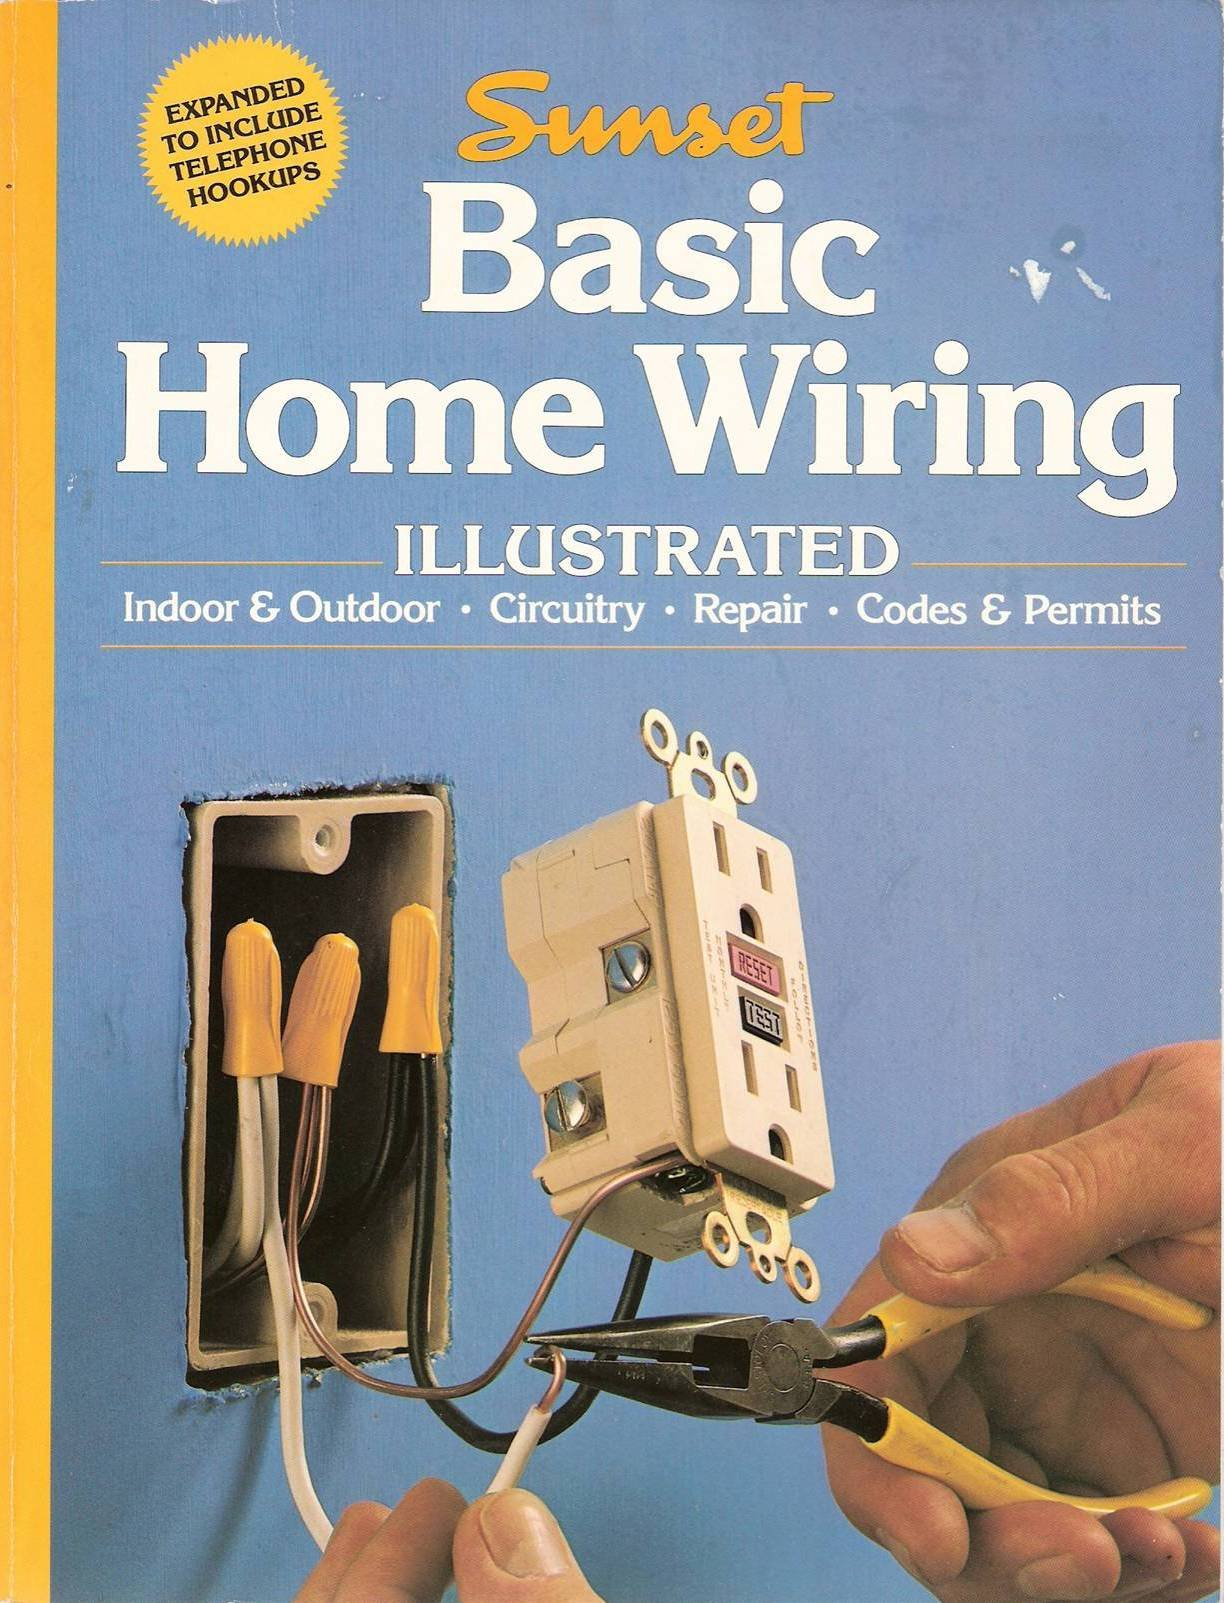 Basic Home Wiring Illustrated Indoor Outdoor Circuitry Repair Codes Permits Linda J Seldon Paul Spring Books